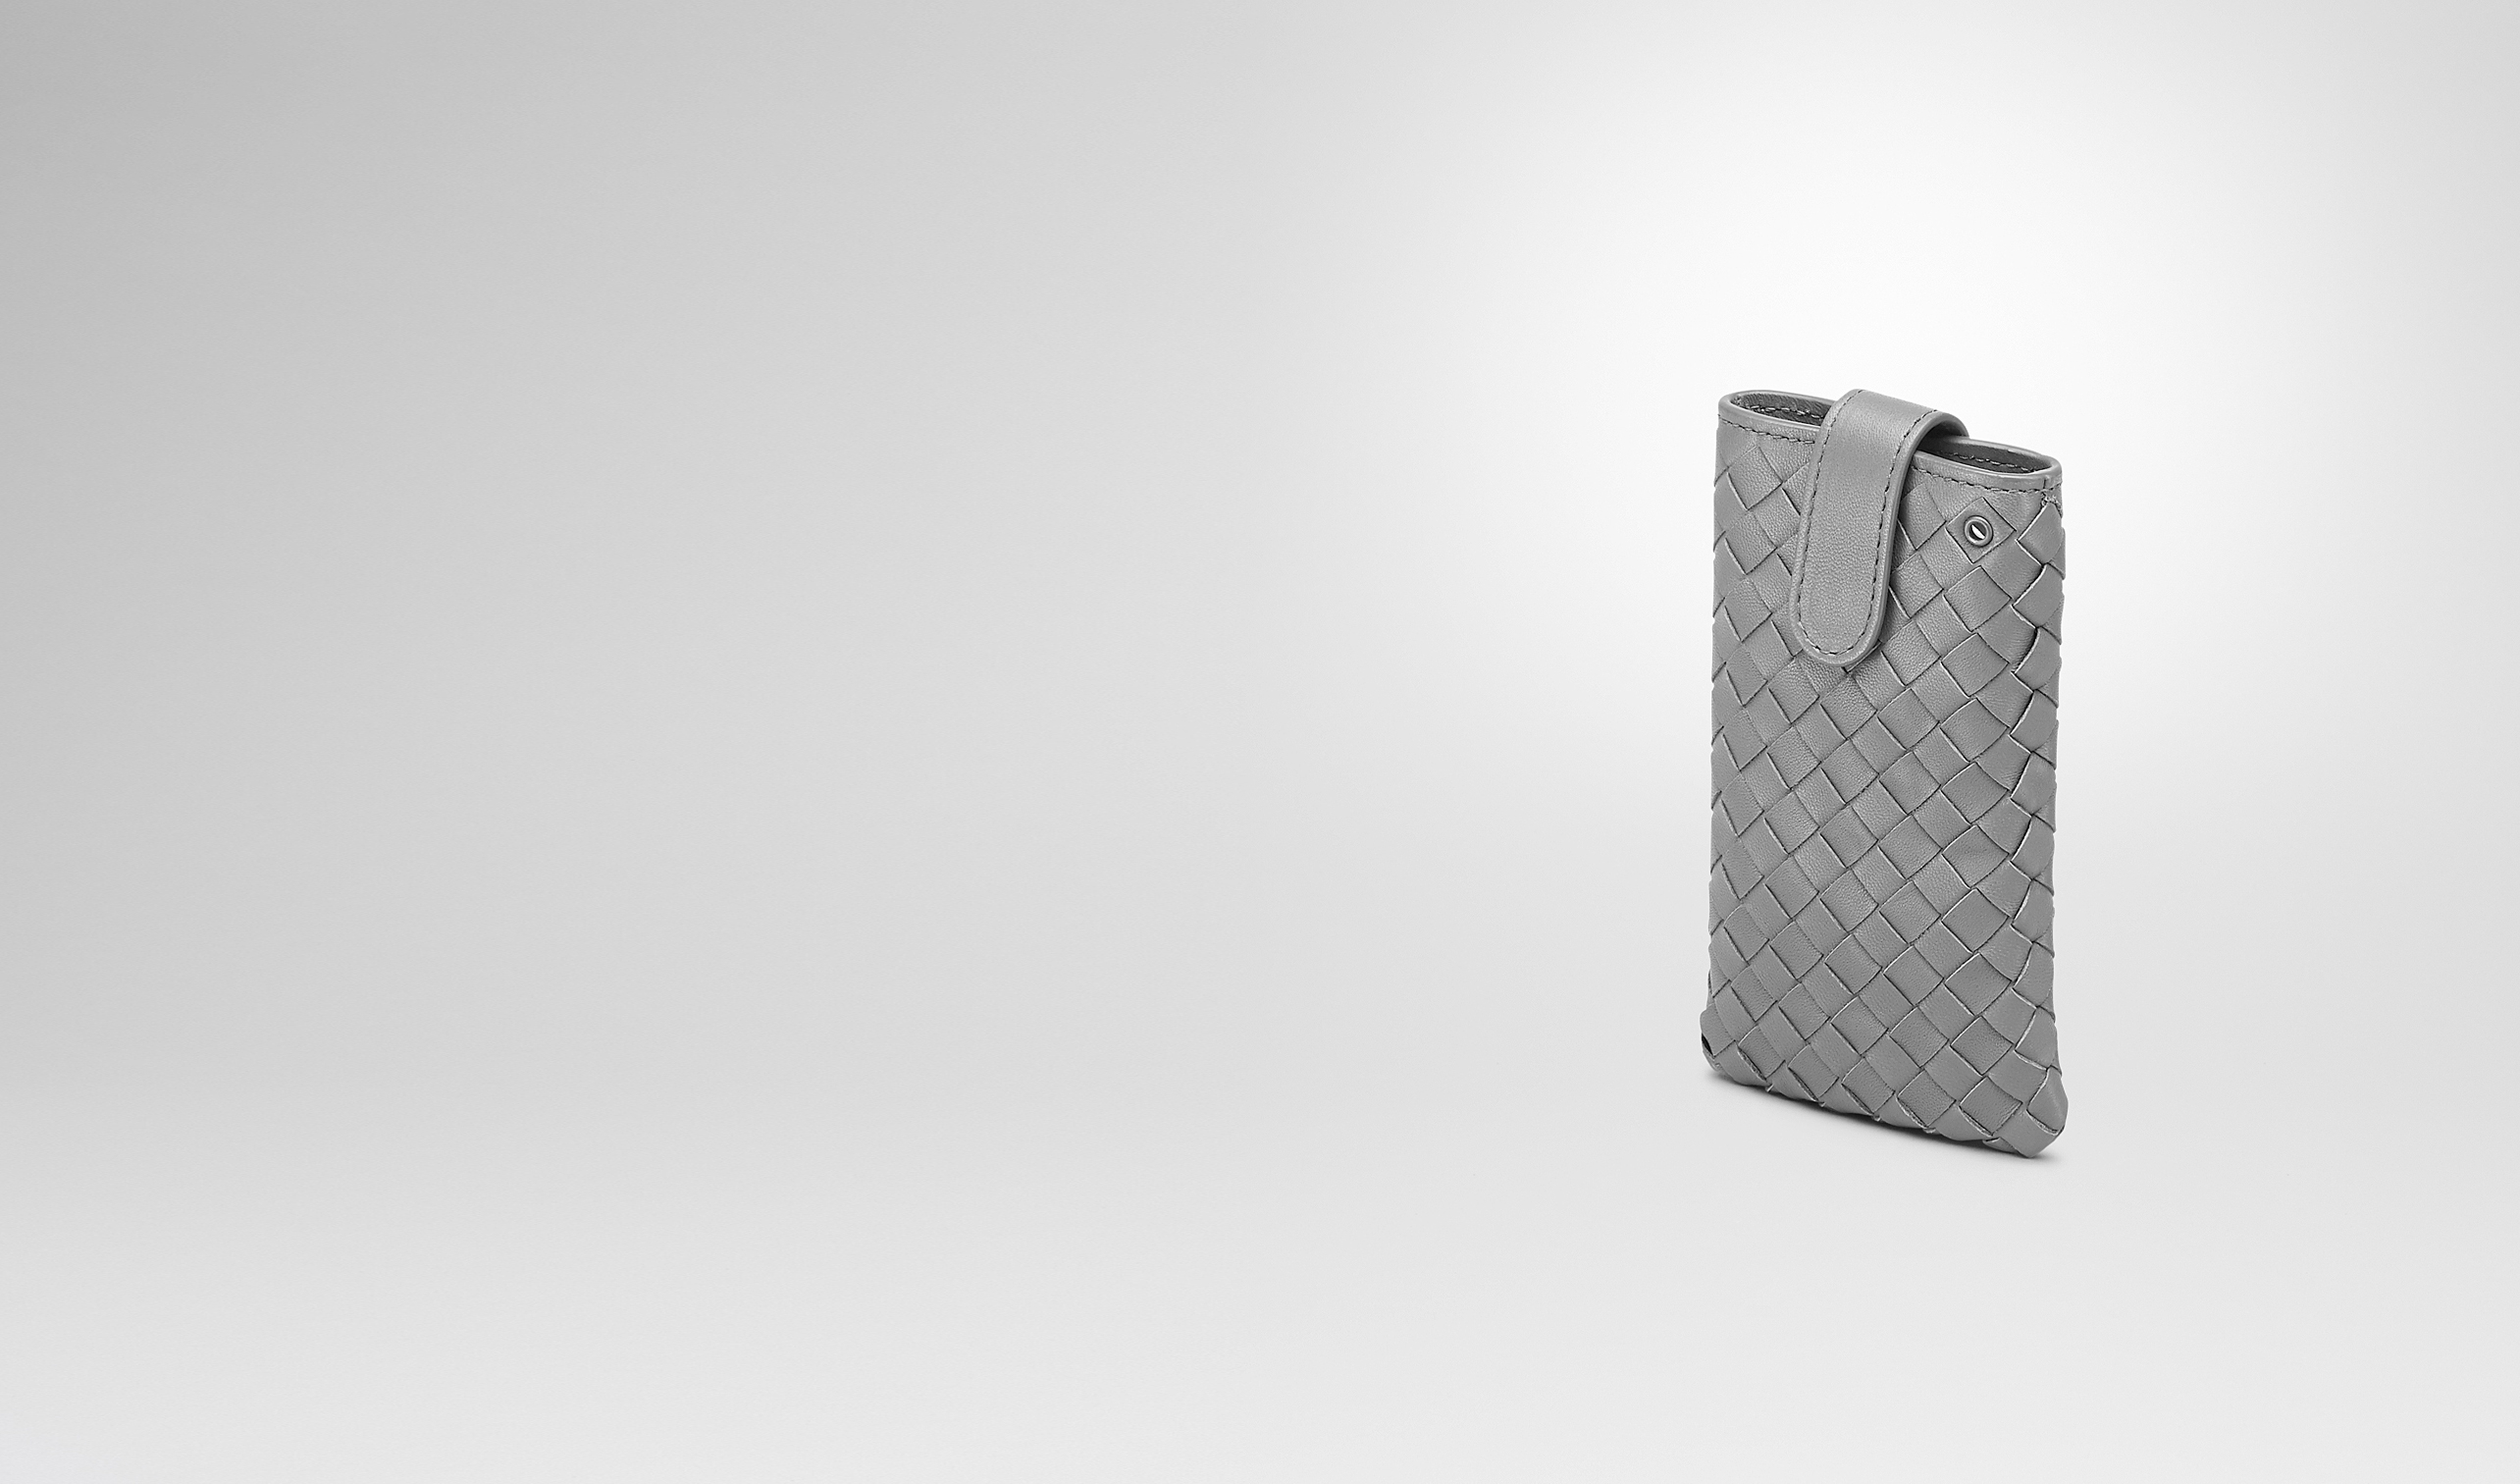 BOTTEGA VENETA Weiteres Leder Accessoire E IPHONE-HÜLLE AUS INTRECCIATO NAPPA IN NEW LIGHT GREY pl